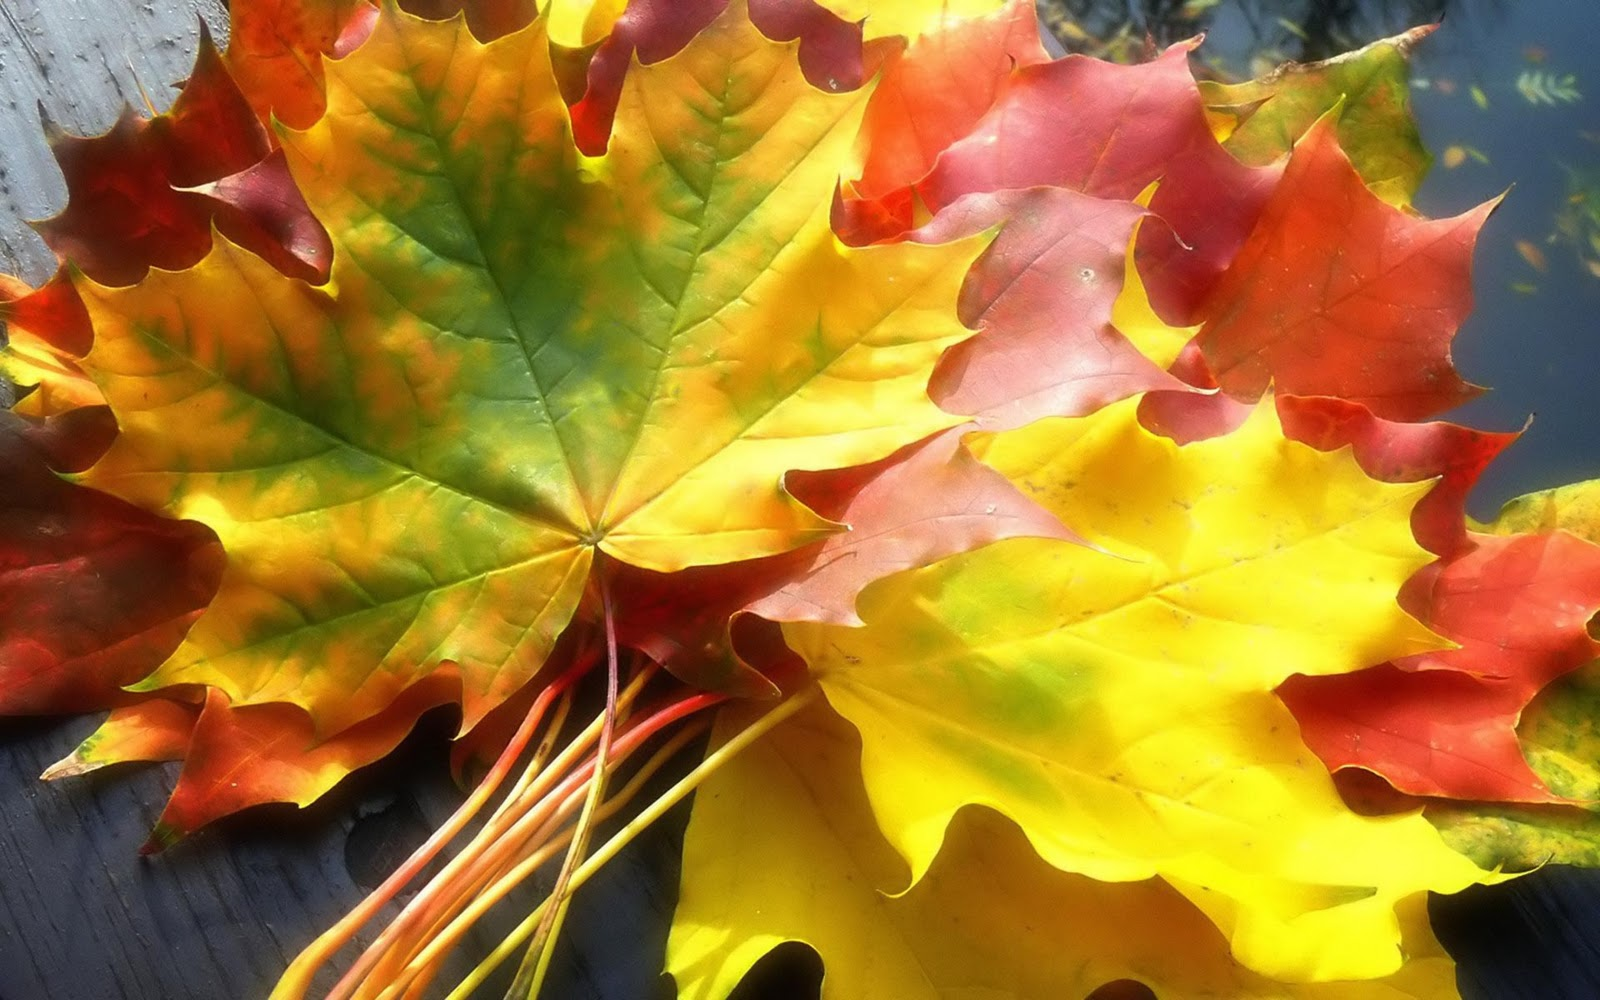 http://1.bp.blogspot.com/-Sx3Jkz6XeH8/TrCSxUfW2oI/AAAAAAAACd4/ERtXqNDtAwU/s1600/Autumn_leaves_hd_wallpaper.jpg